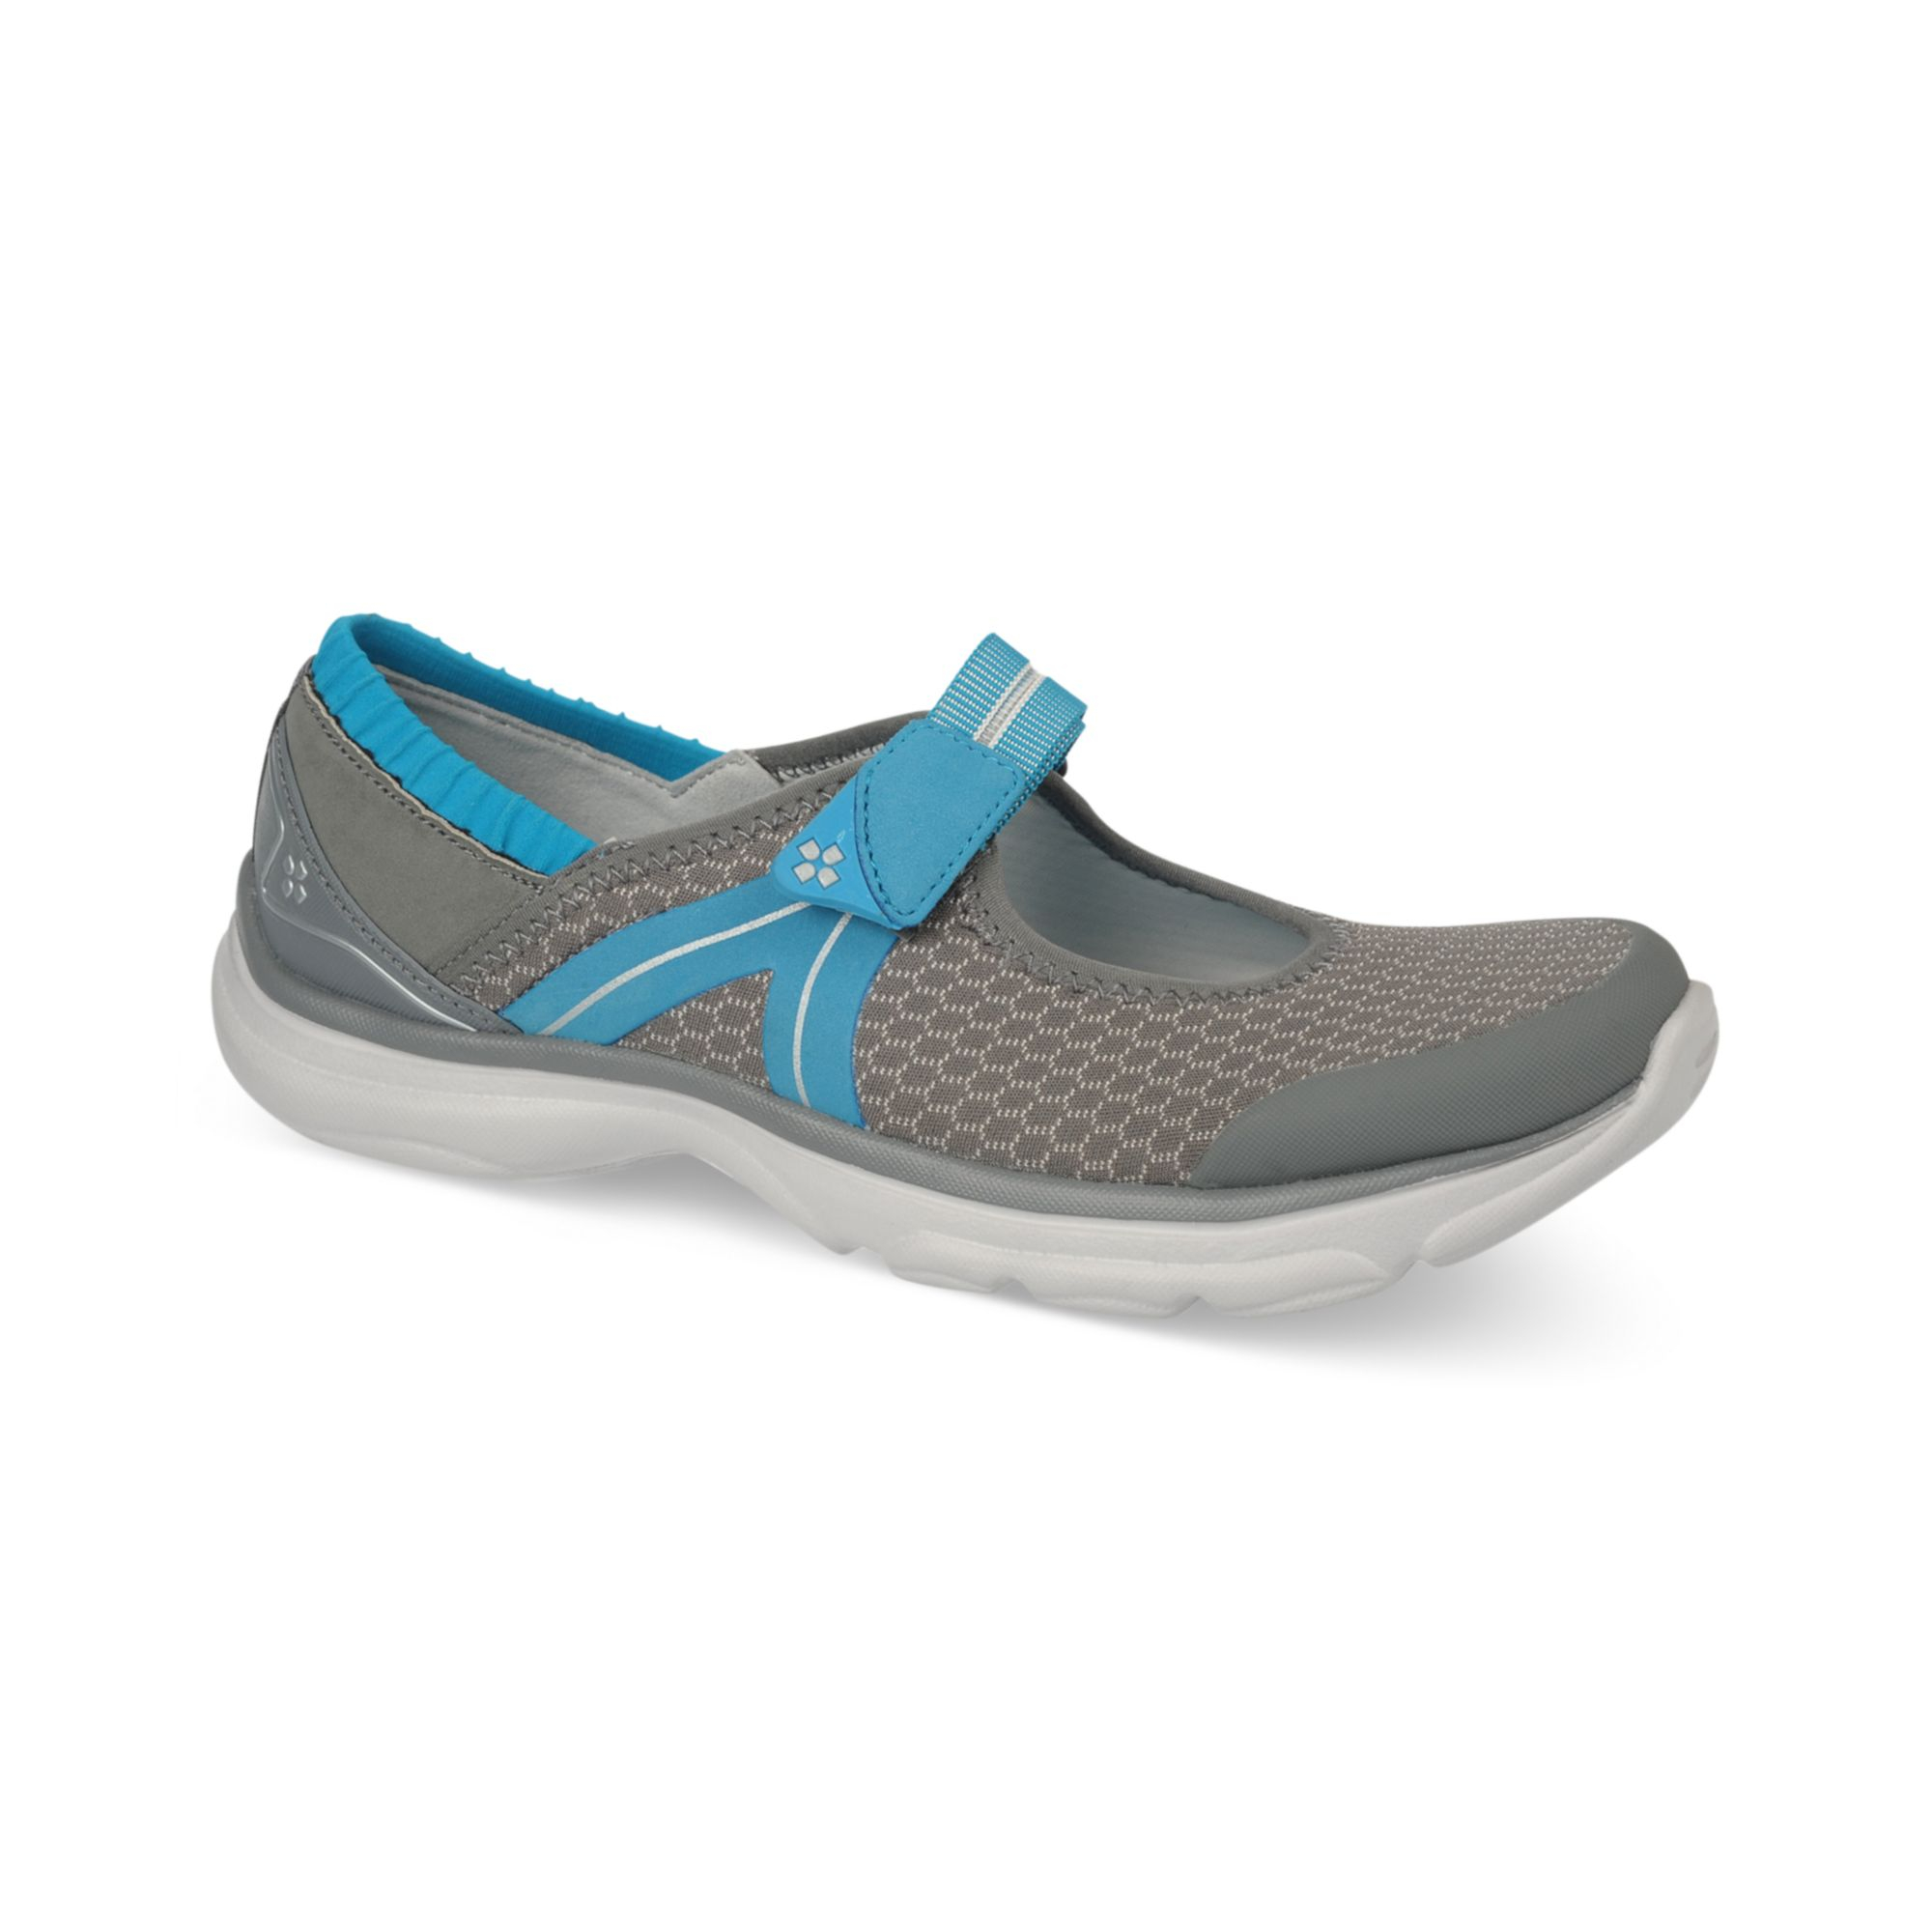 Mary Jane Tennis Shoes For Women